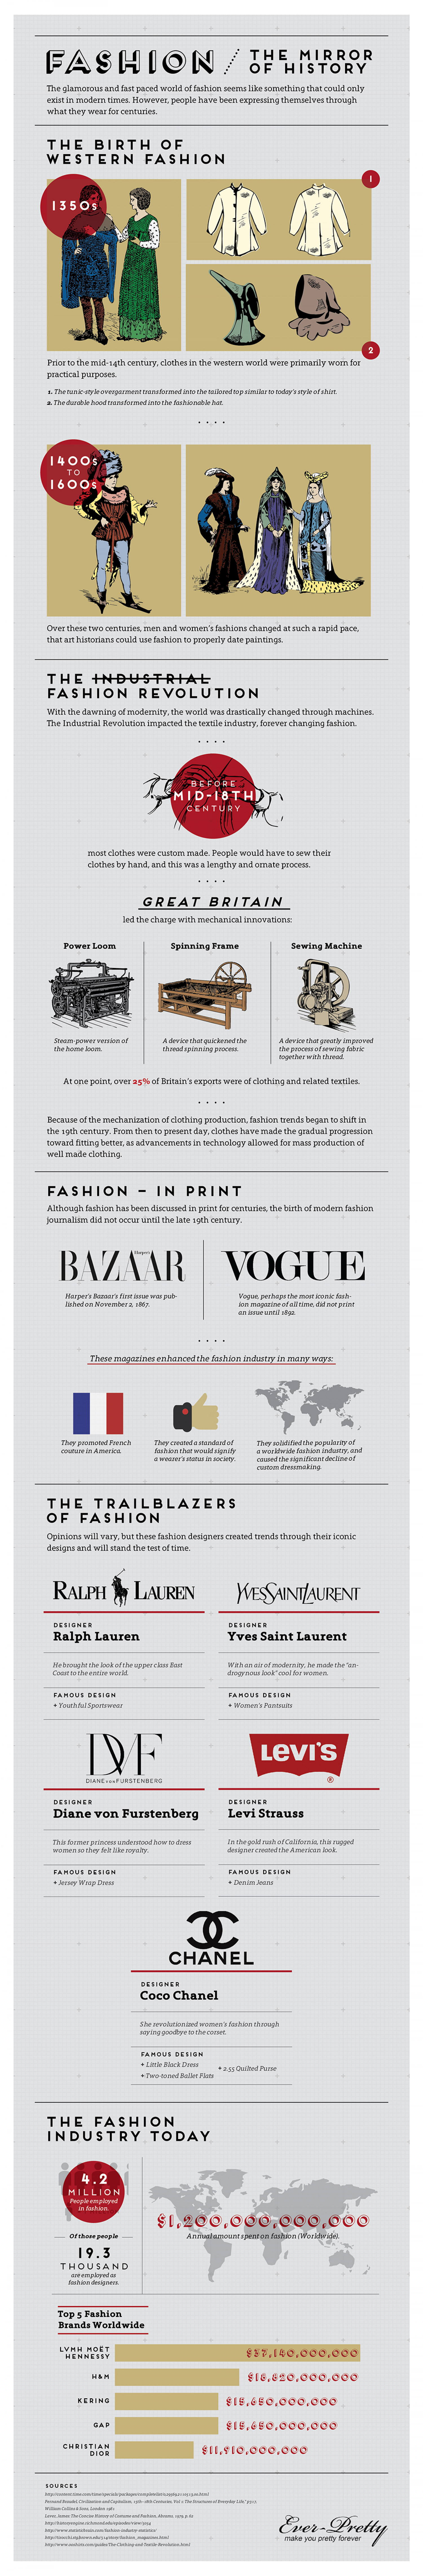 Fashion - The Mirror of History Infographic